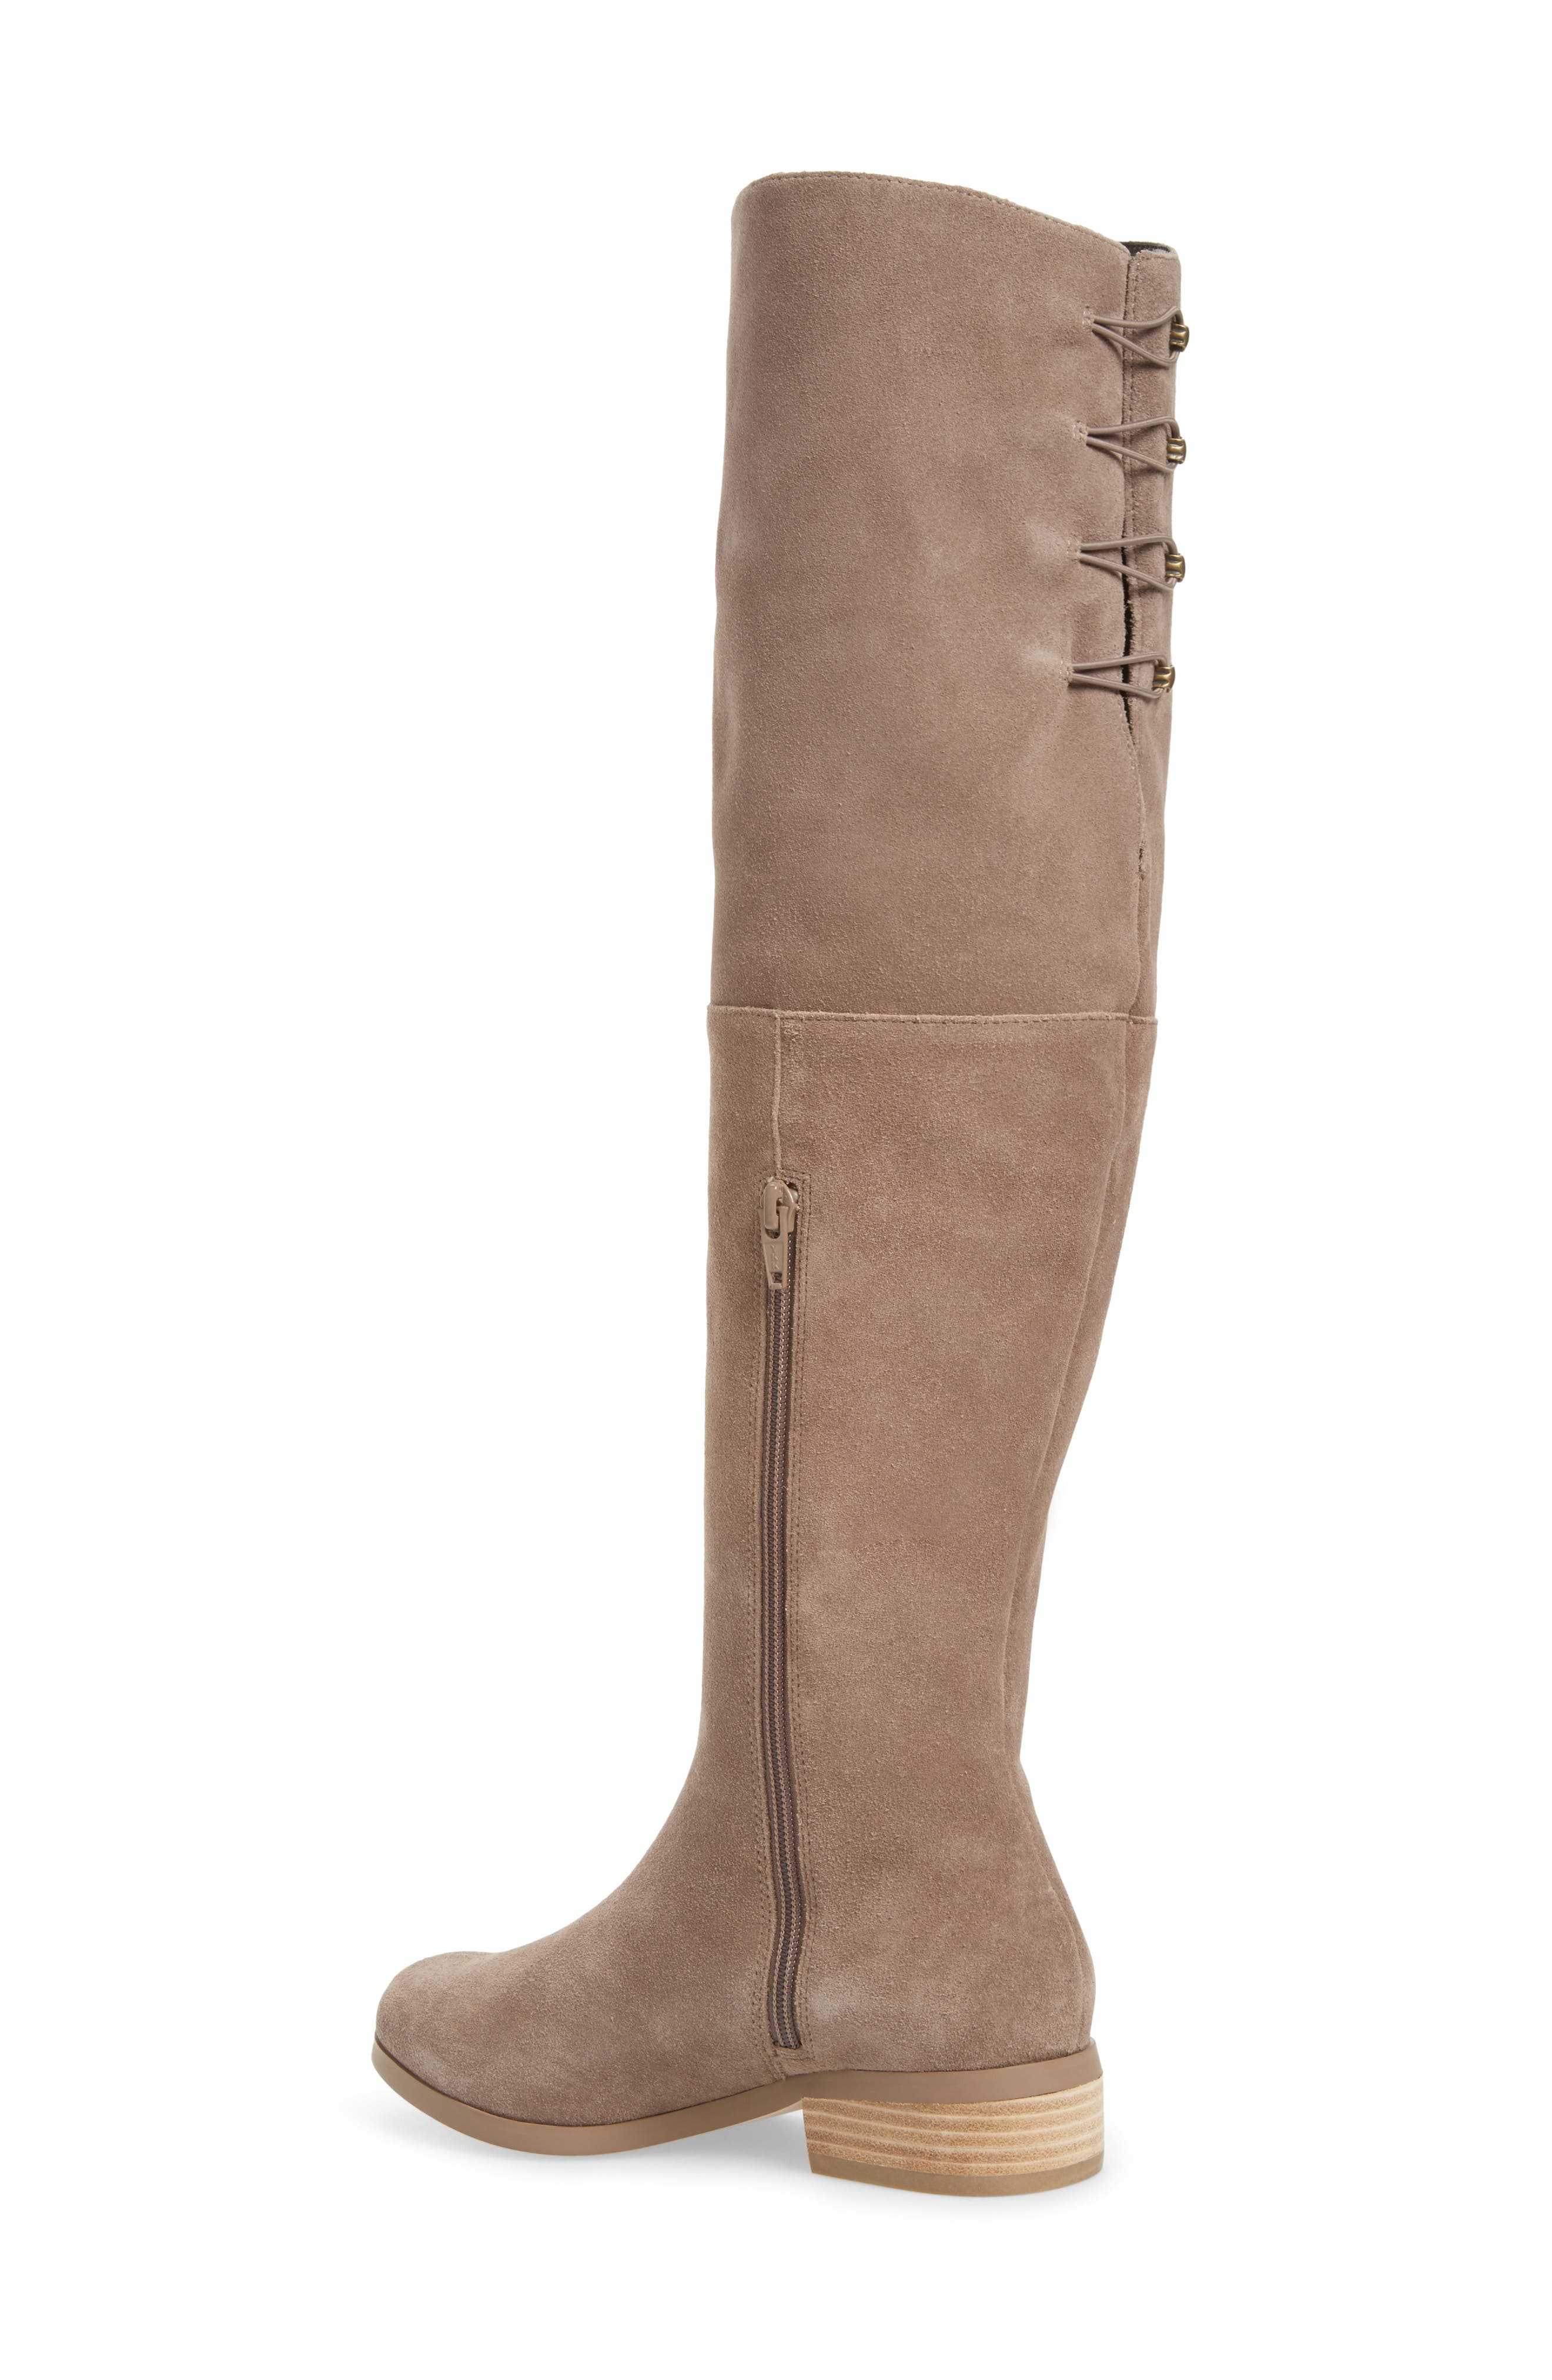 Sonoma Over the Knee Boot,                             Alternate thumbnail 2, color,                             030